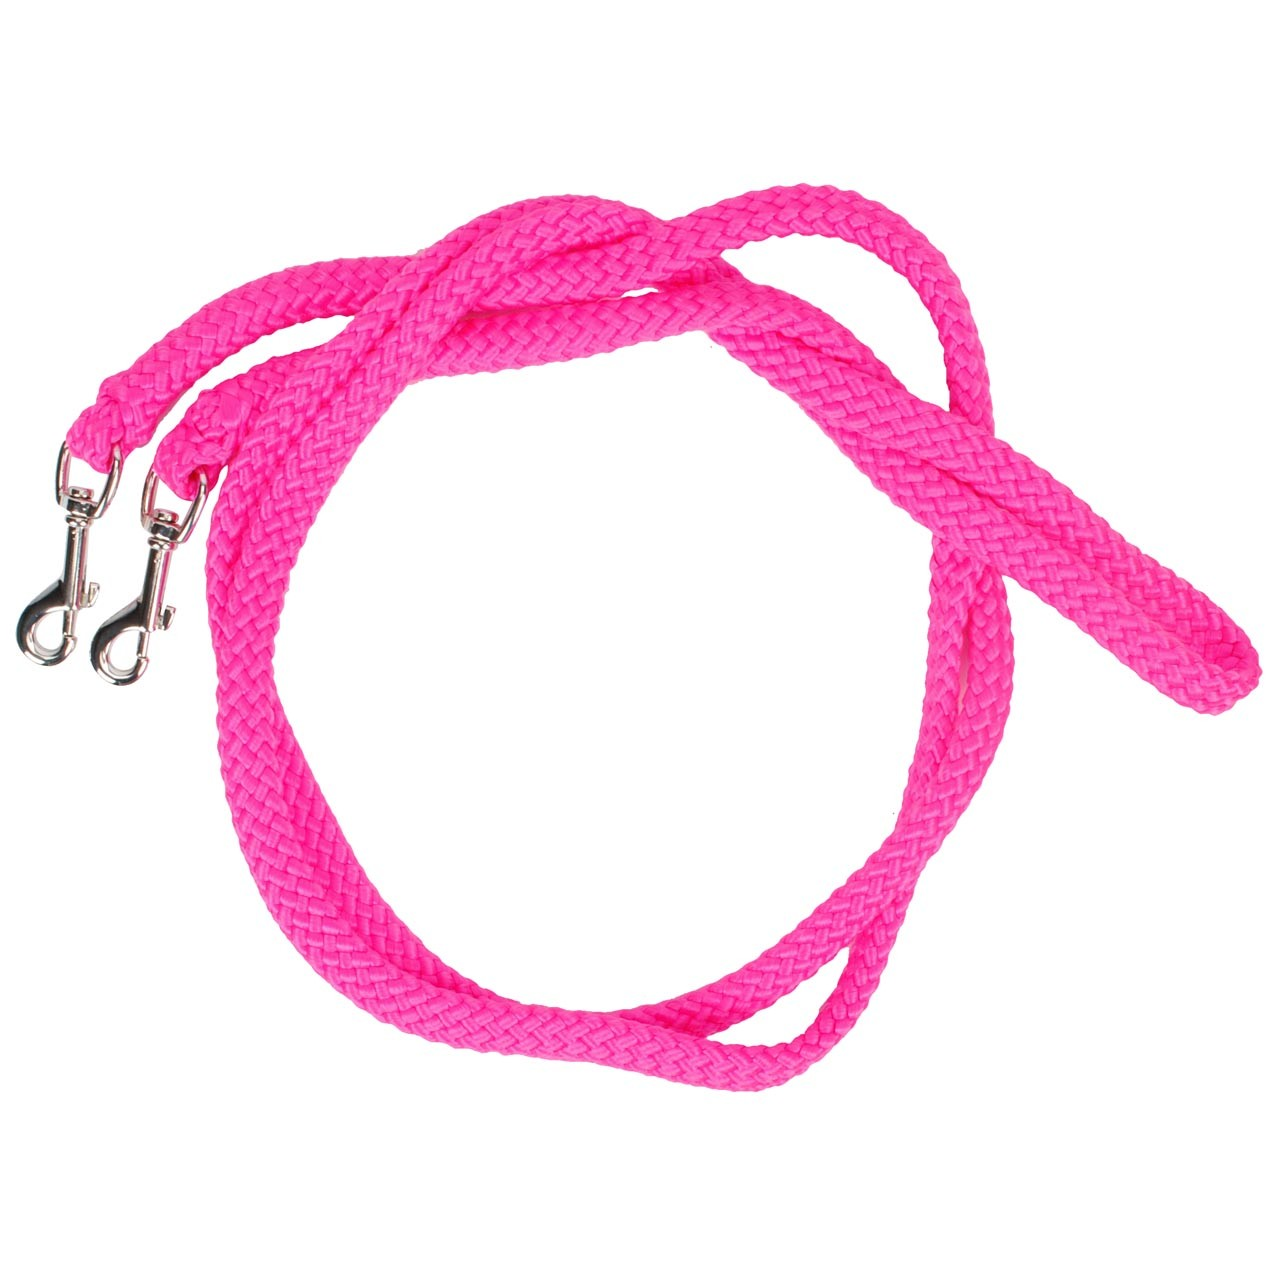 Horse Charms touwteugels fuchsia maat:s